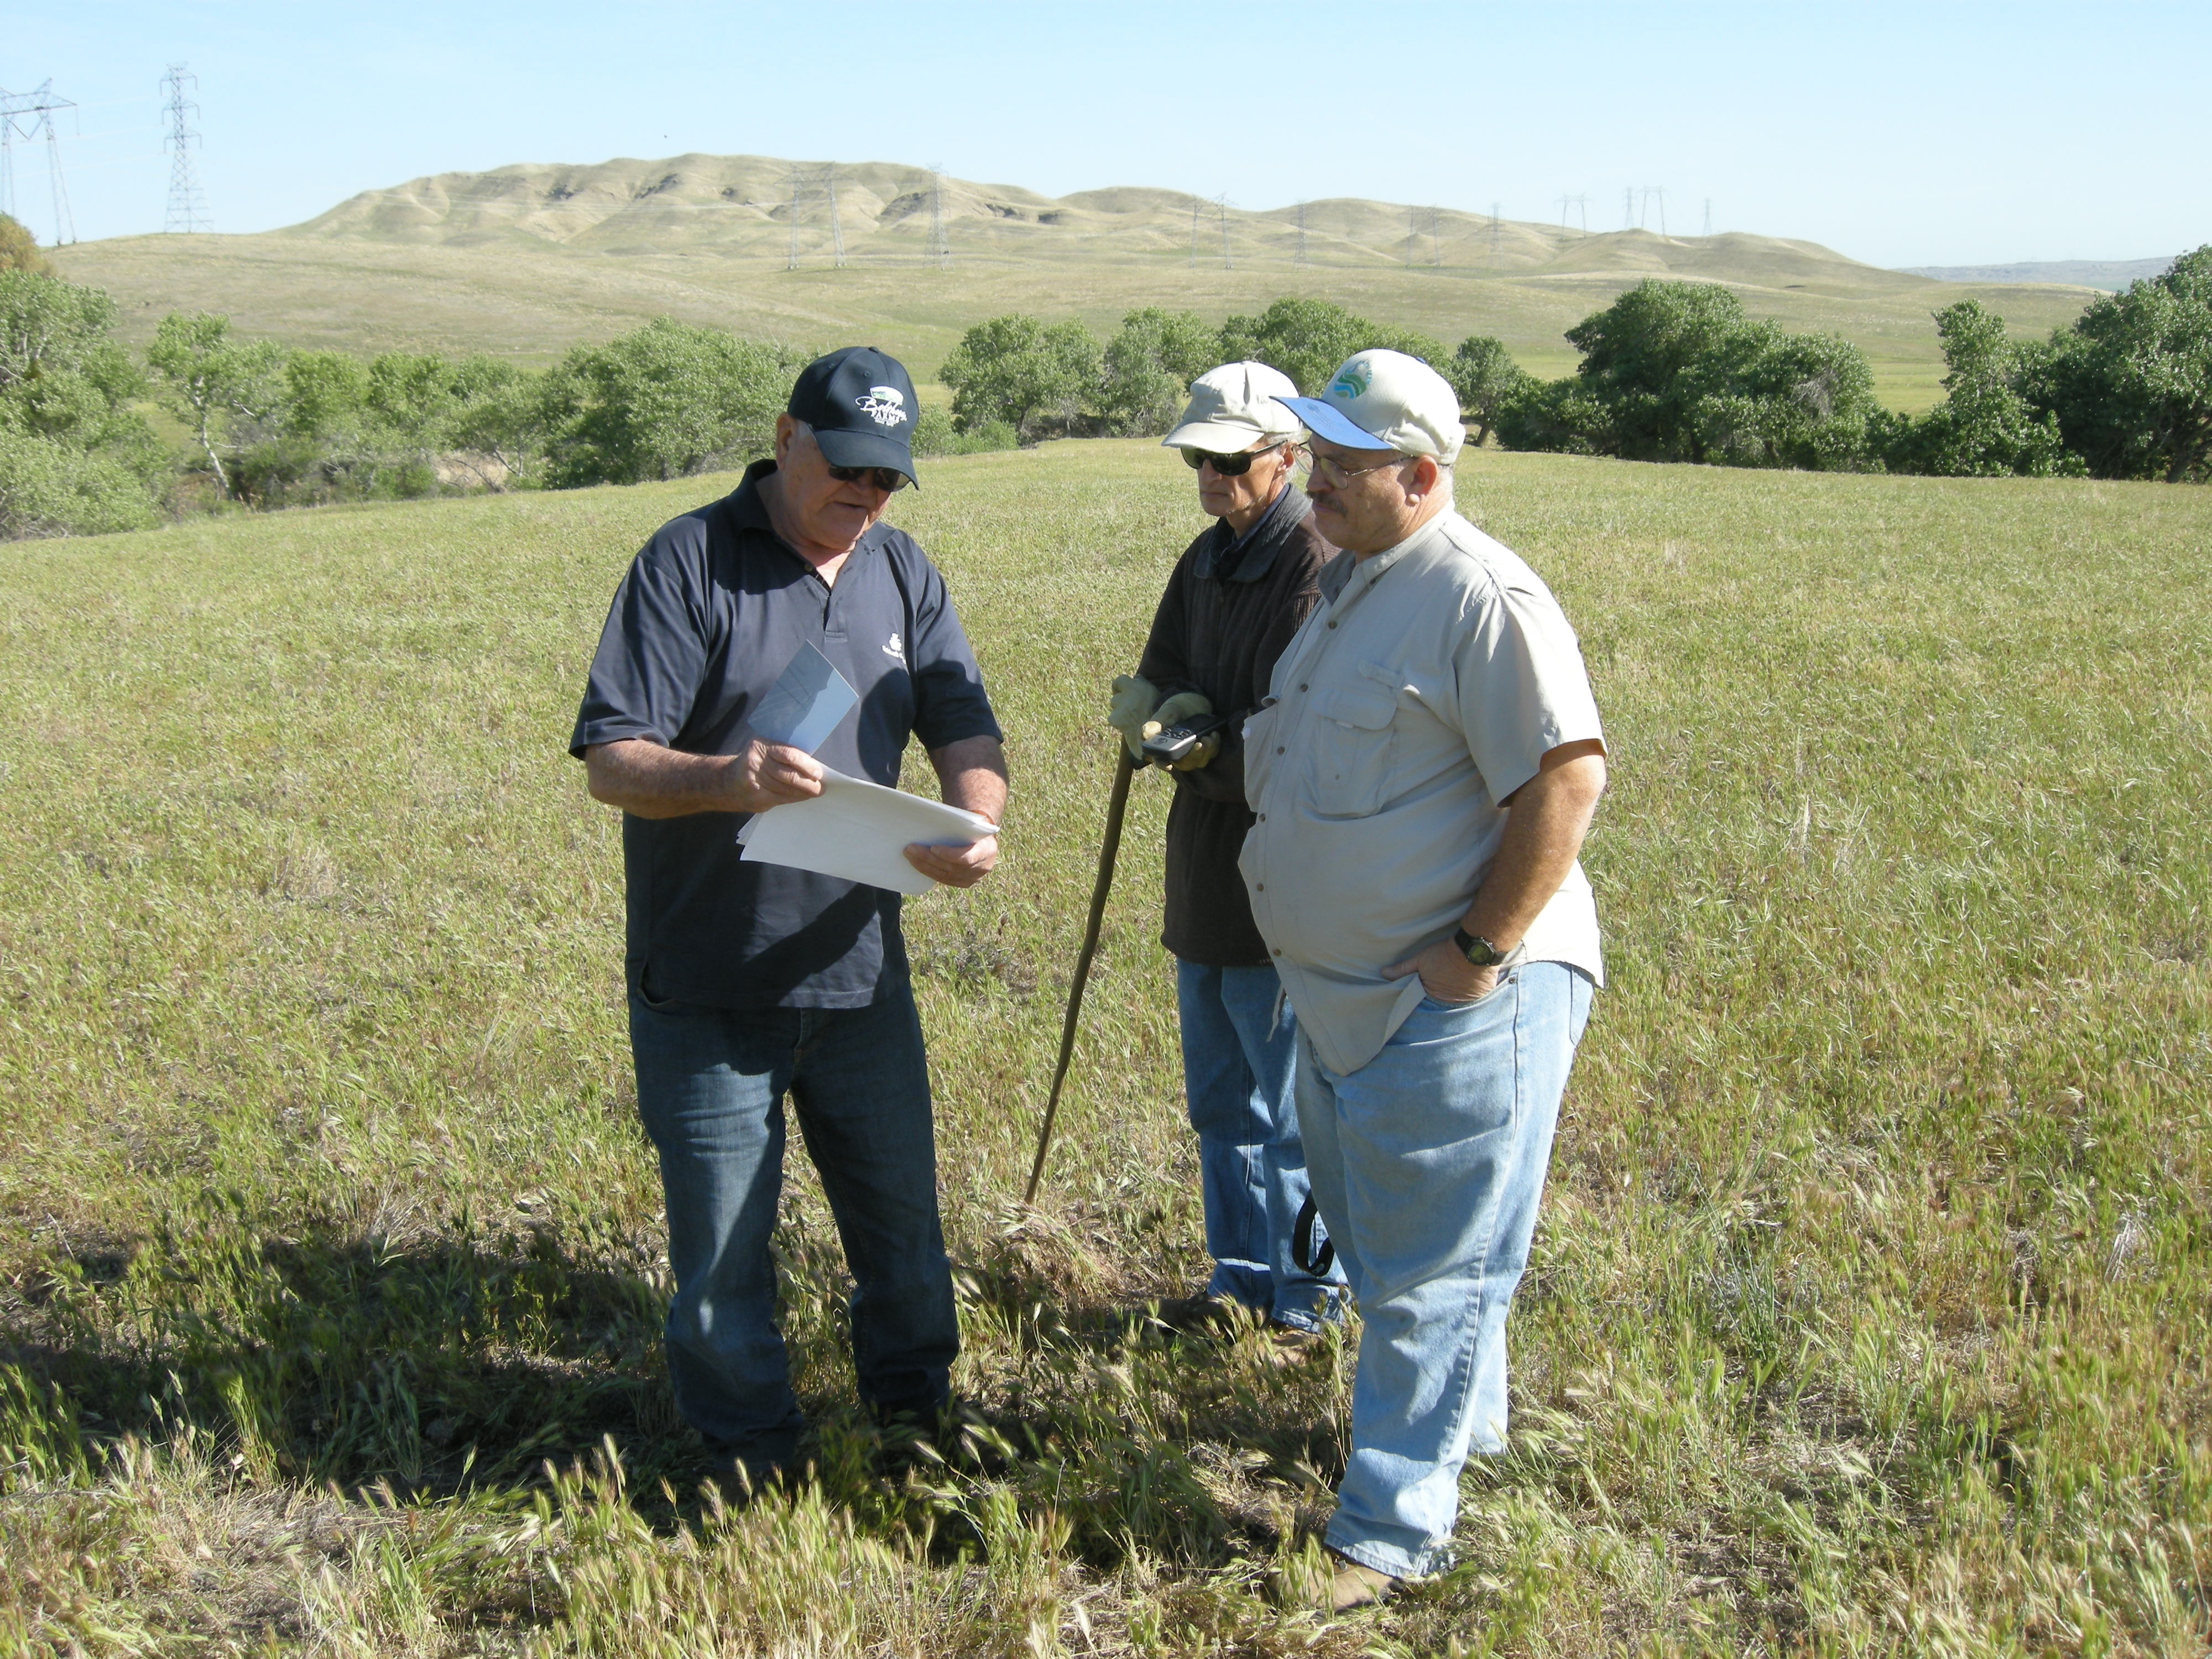 men out in a field in California